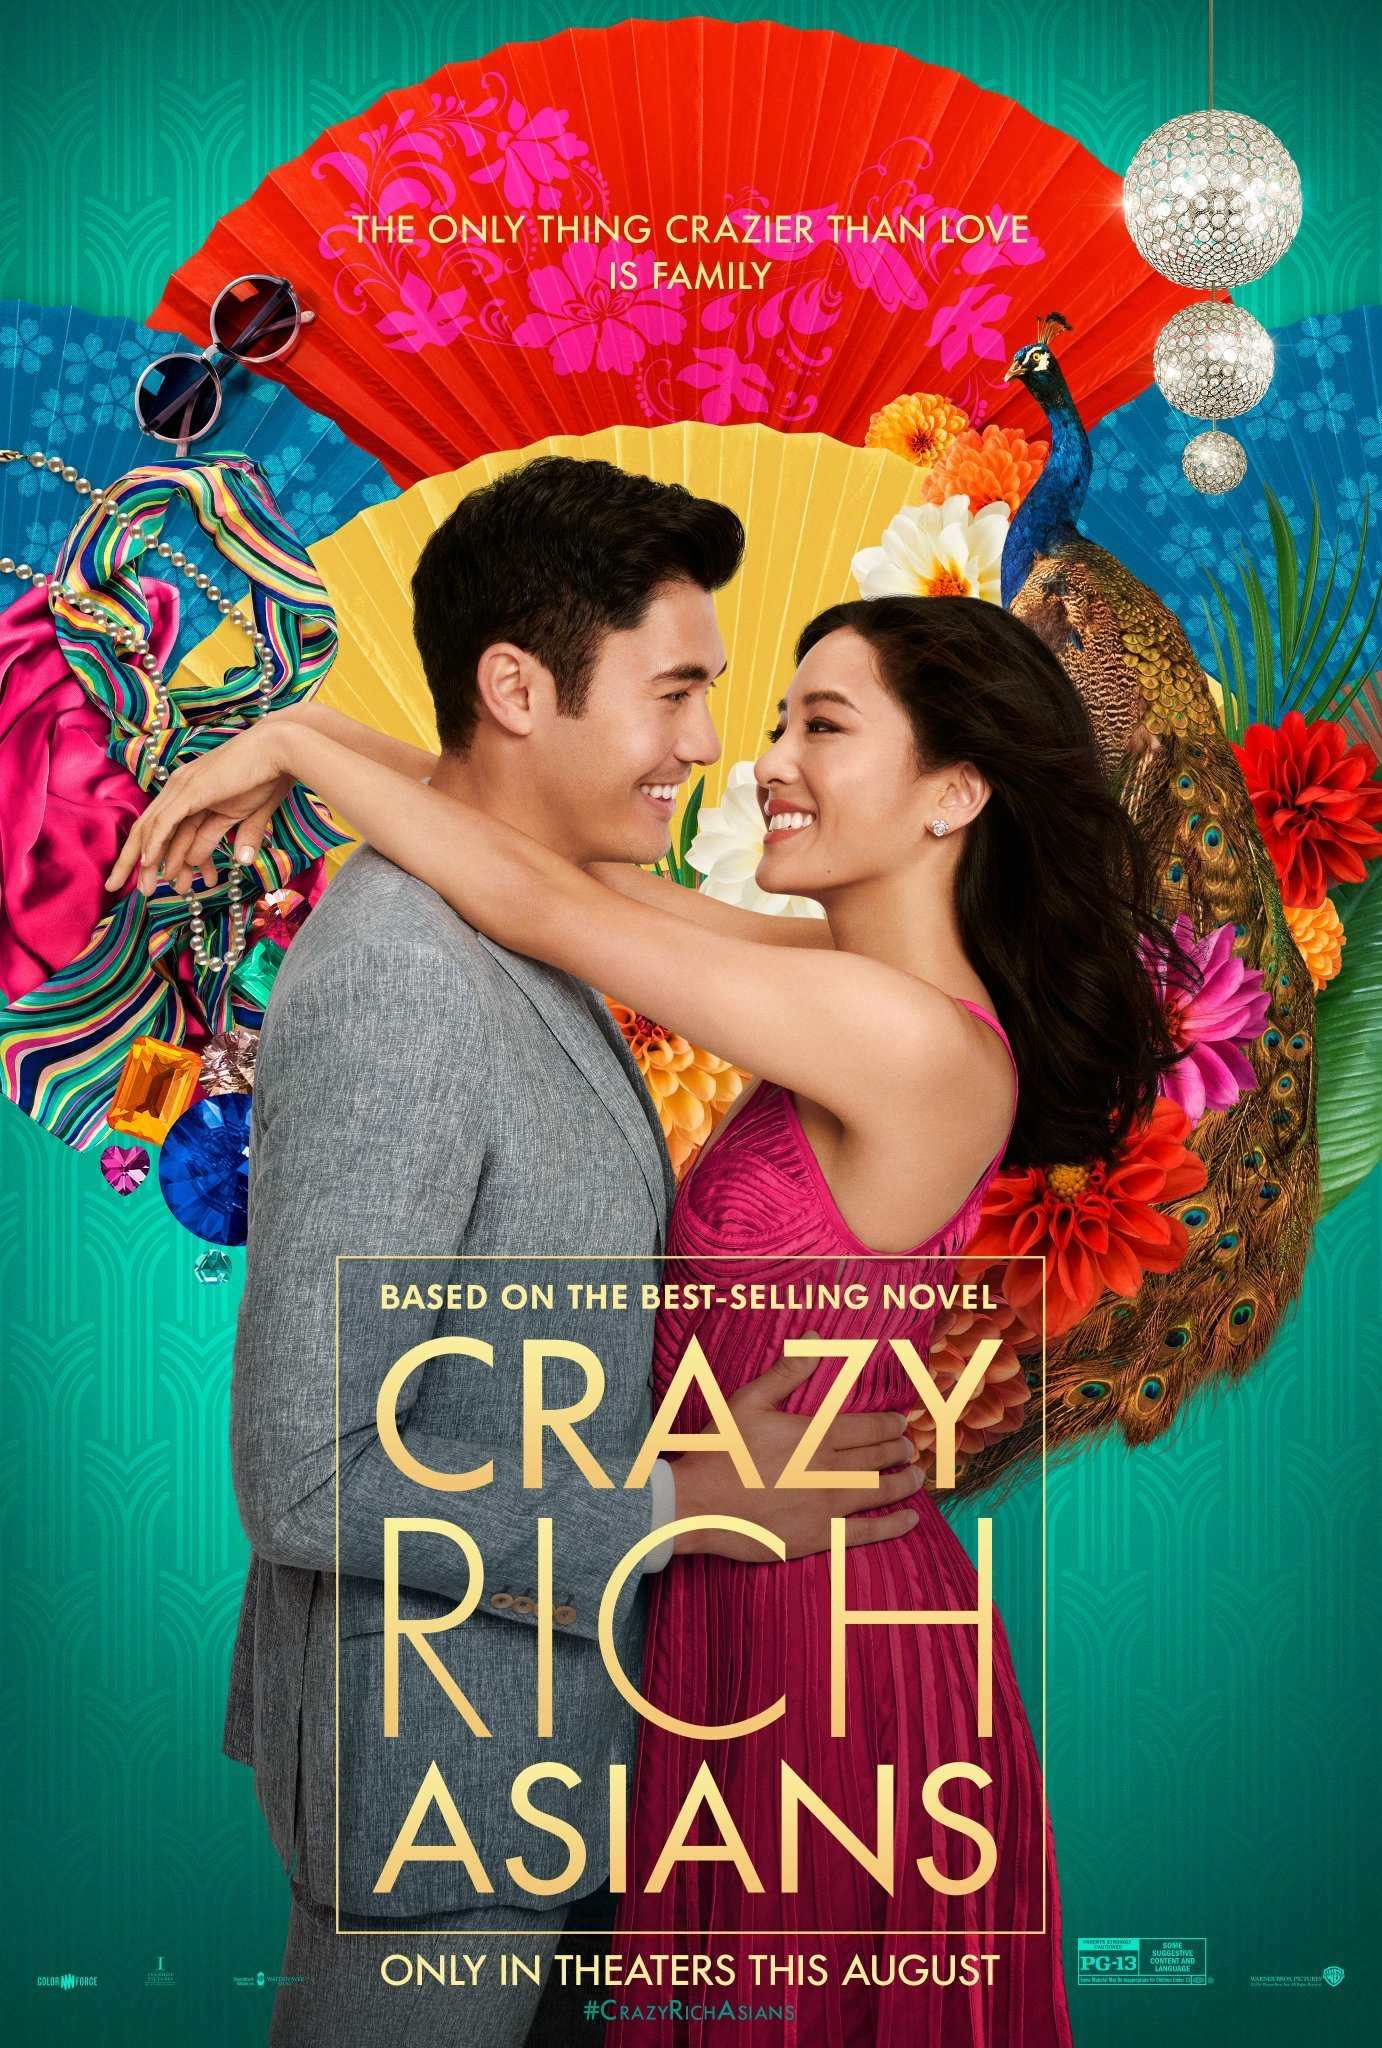 Warner Bros. movie campaign poster for Crazy Rich Asians. Image courtesy of iMDb.